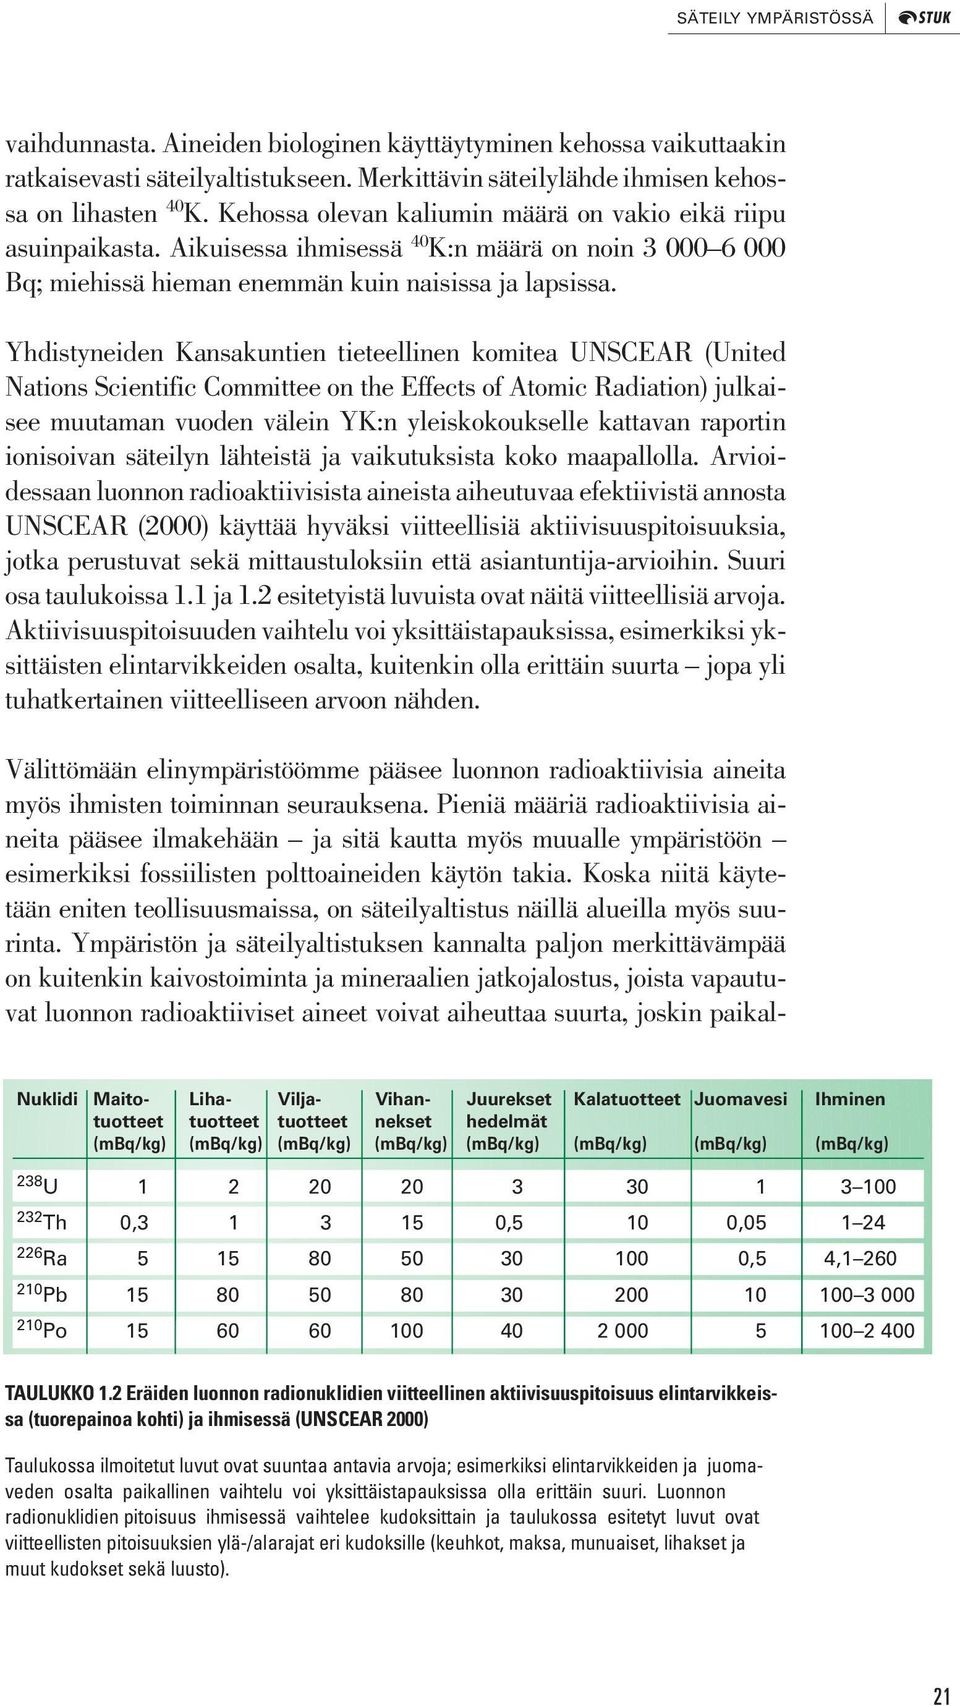 Yhdistyneiden Kansakuntien tieteellinen komitea UNSCEAR (United Nations Scientific Committee on the Effects of Atomic Radiation) julkaisee muutaman vuoden välein YK:n yleiskokoukselle kattavan